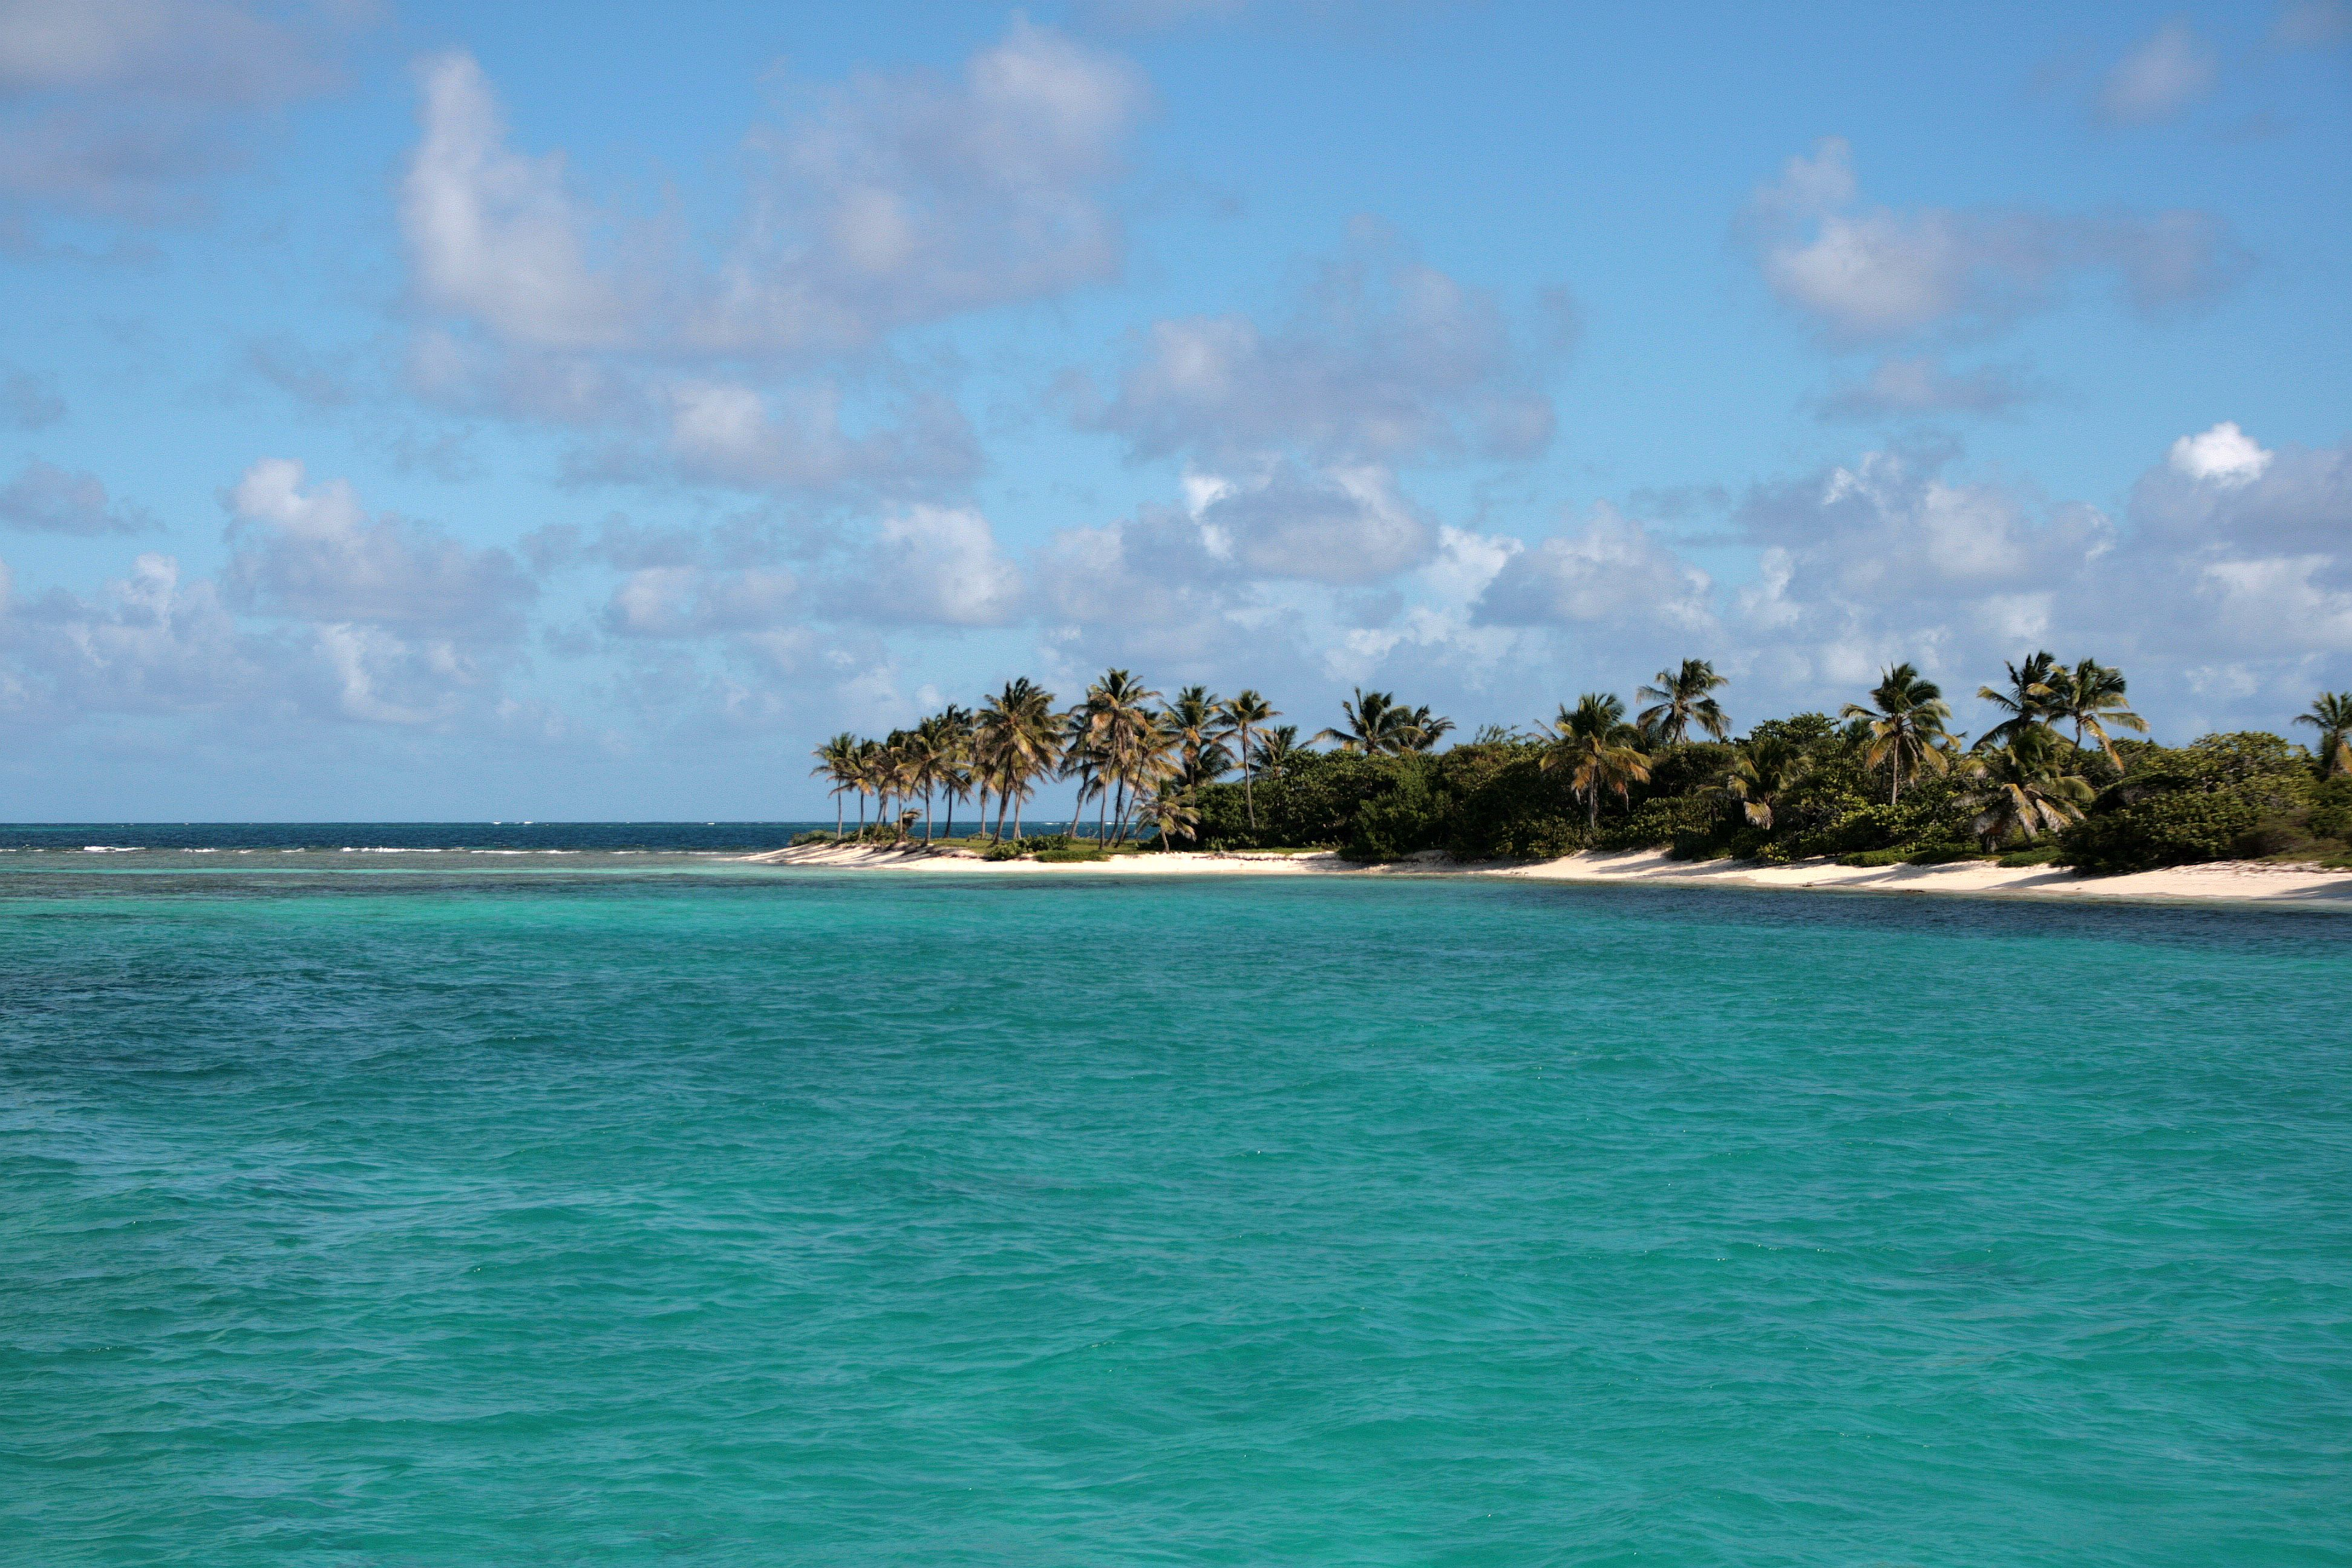 Three Canadian airlines now flying direct to St. Vincent and The Grenadines